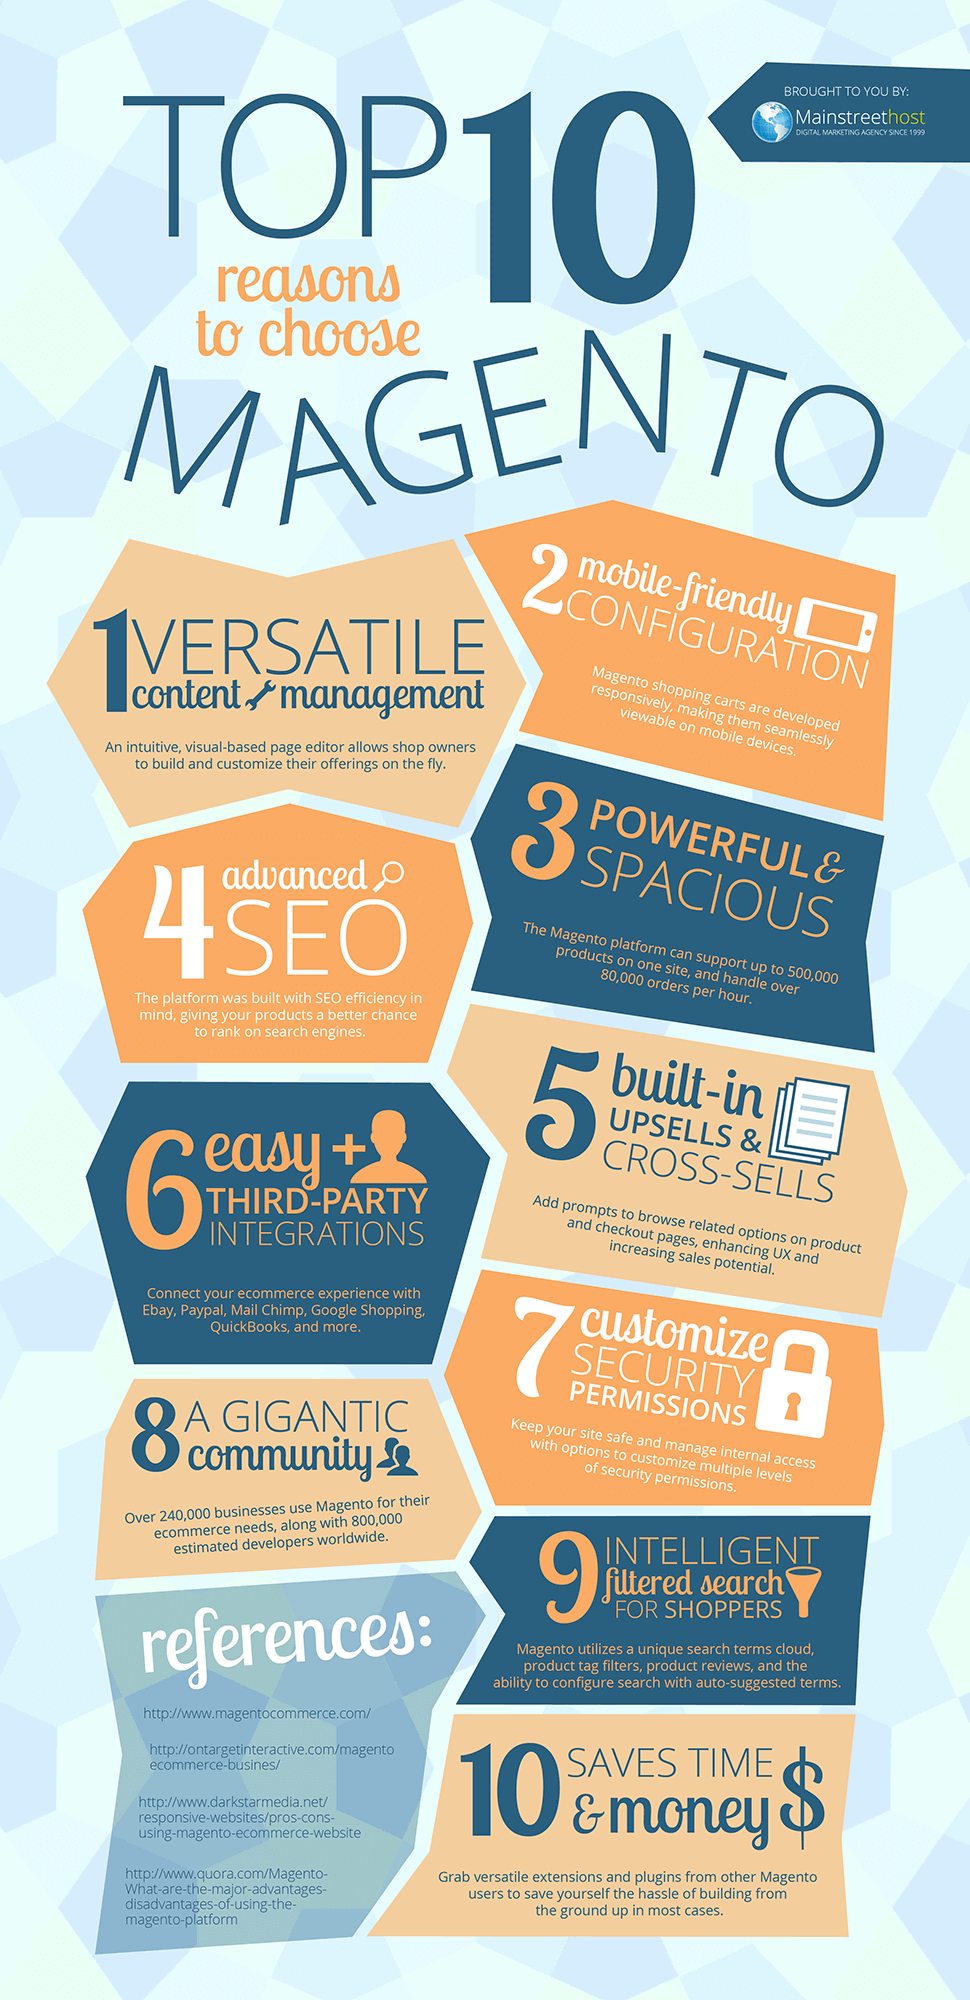 cms comparison - 10 reasons to choose magento infographic